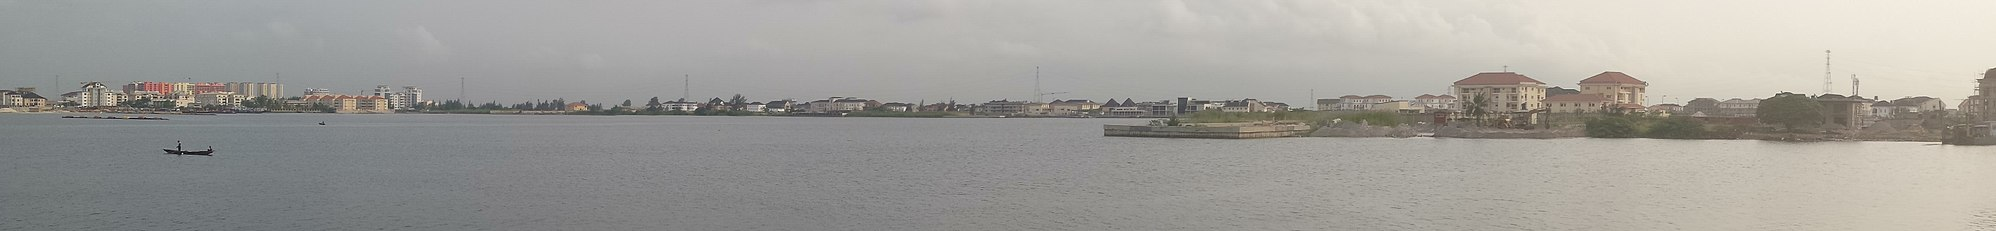 Banana Island, is an artificial island off the foreshore of Lekki-Ikoyi Link Bridge.